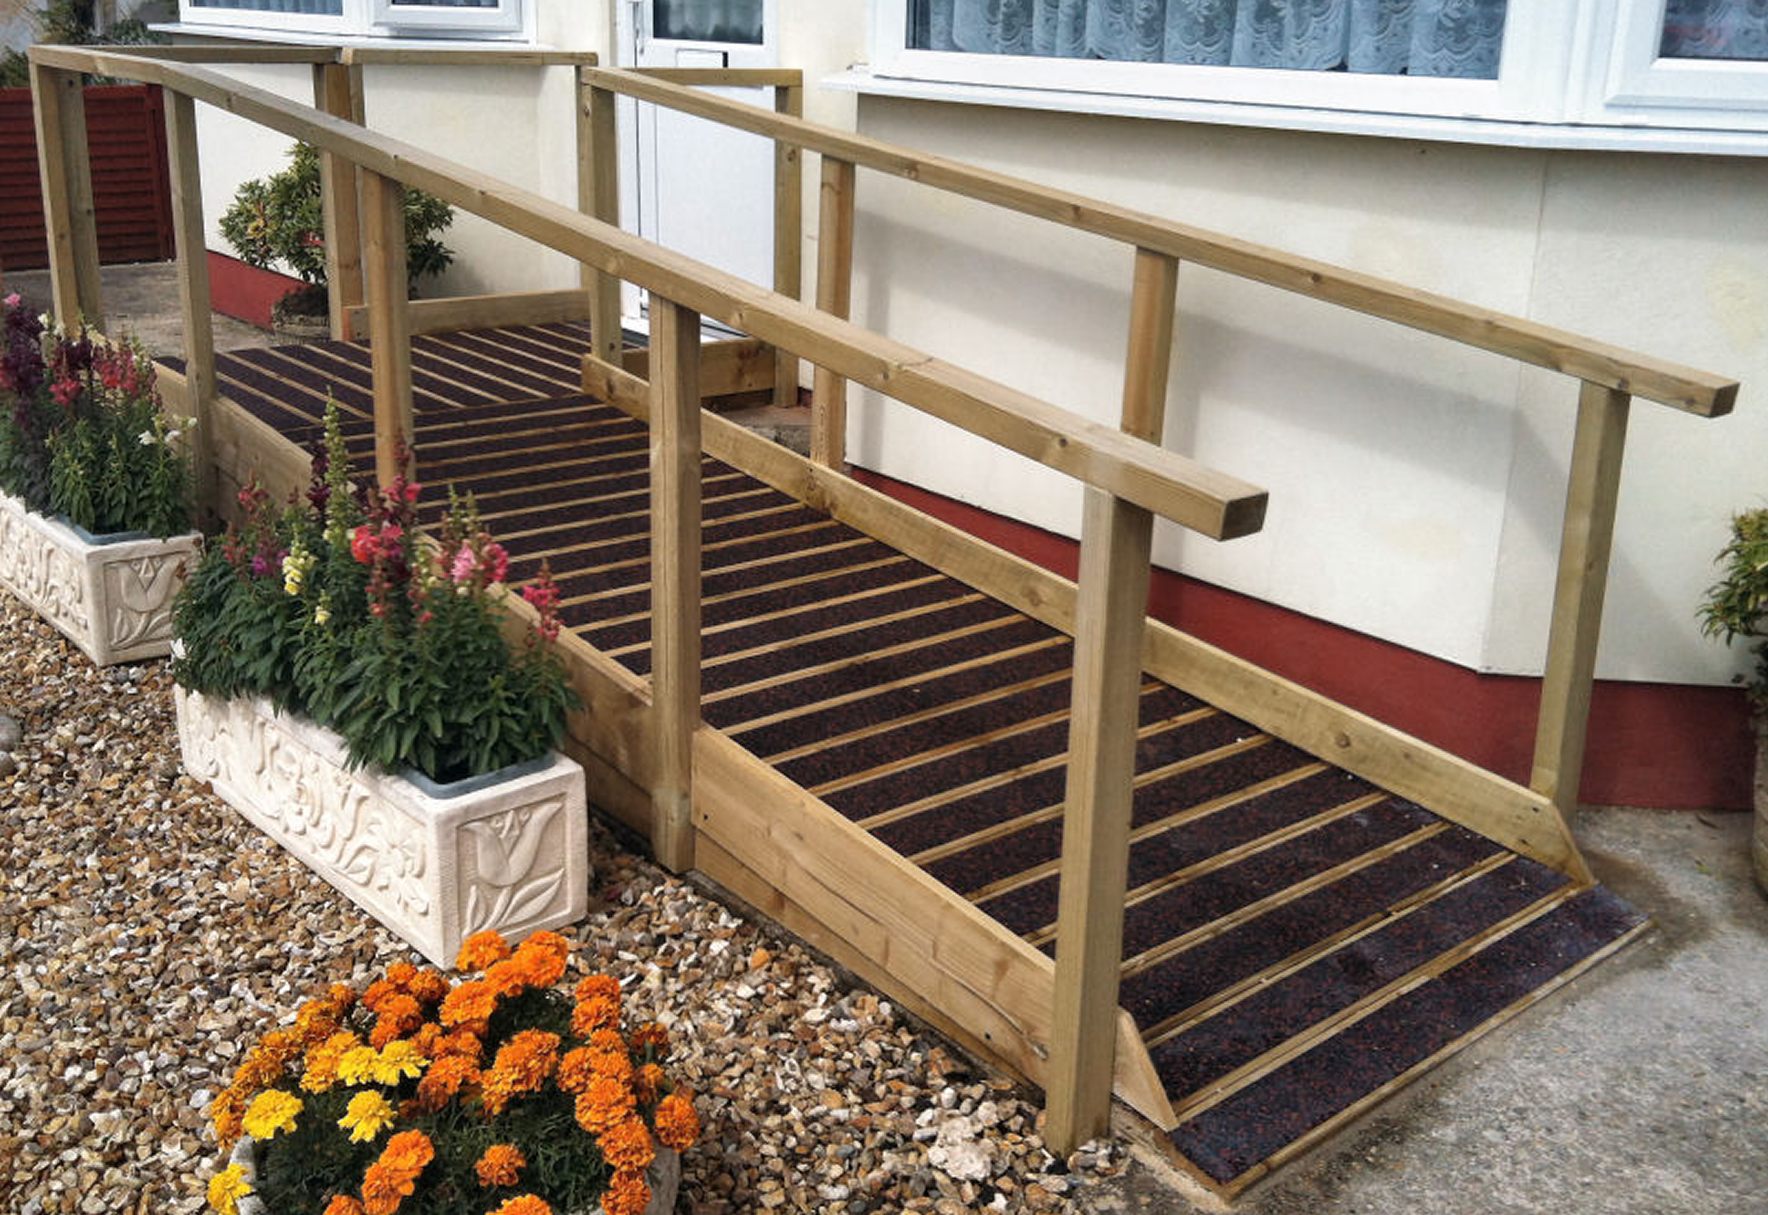 Disabled Access  Wheelchair Ramps  wheel chair ramps